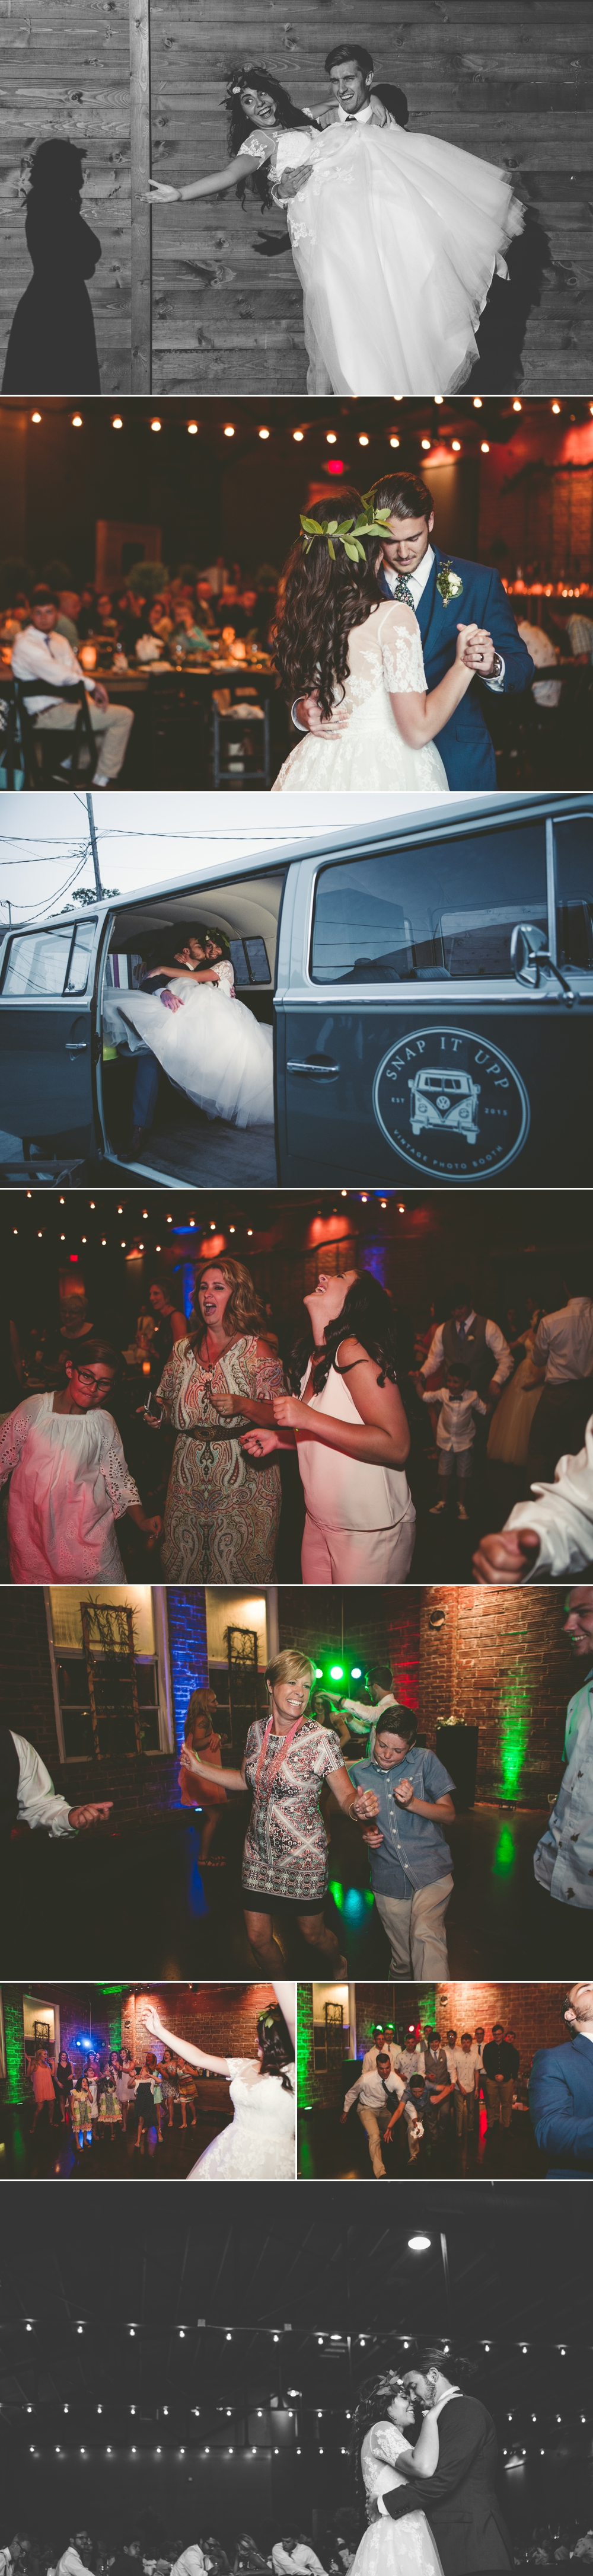 jason_domingues_photography_best_kansas_city_wedding_photographer_manhattan_ks_aggieville_upp_4